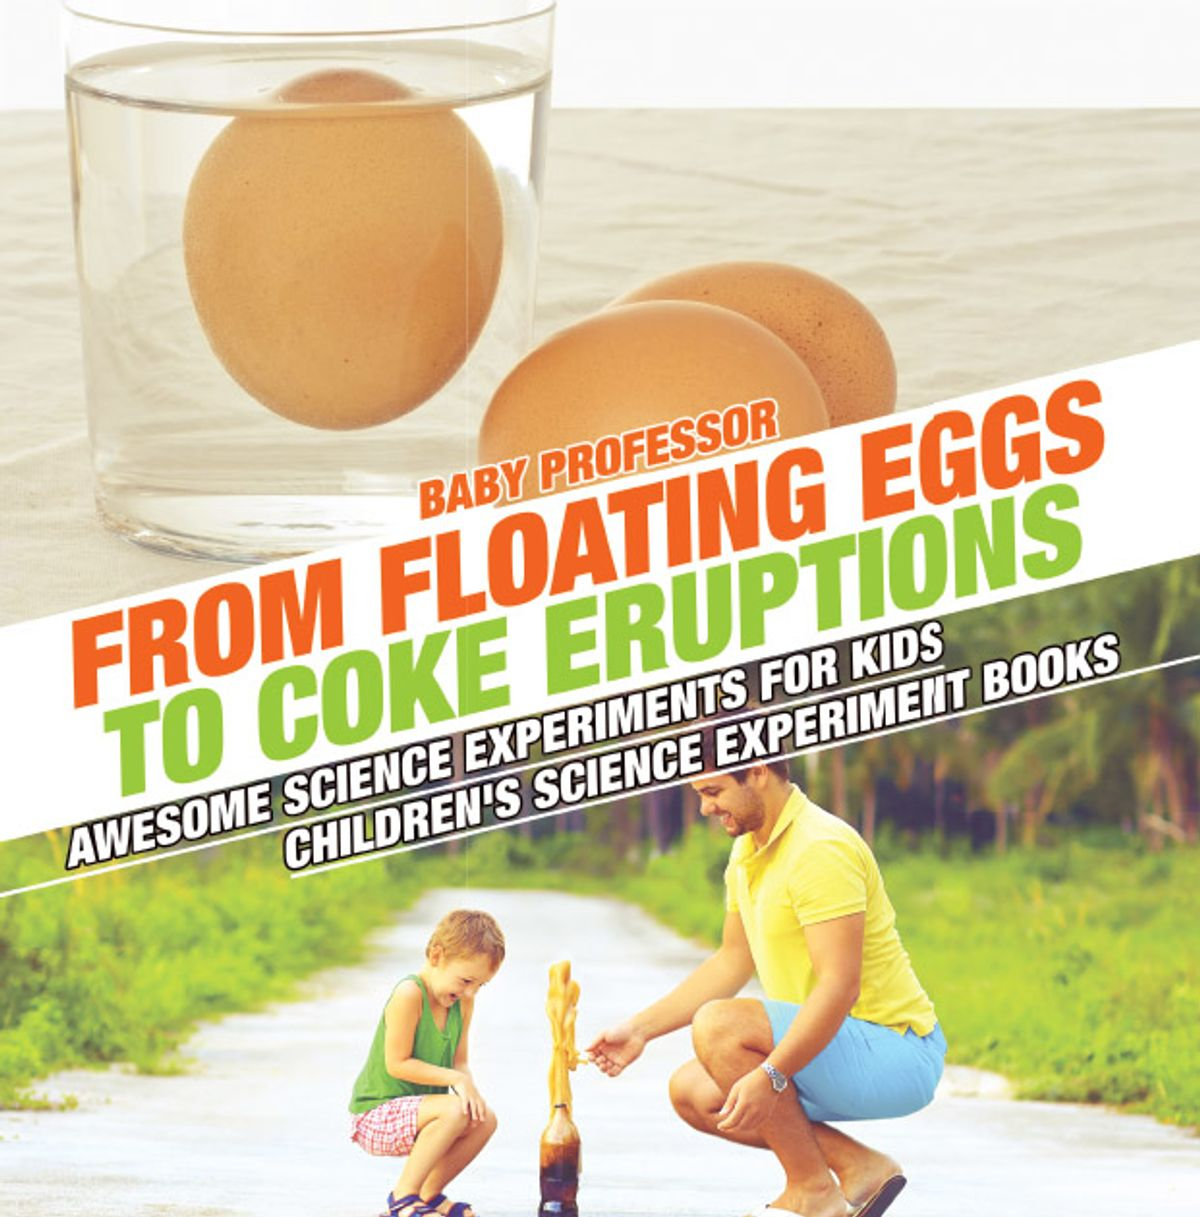 From Floating Eggs To Coke Eruptions